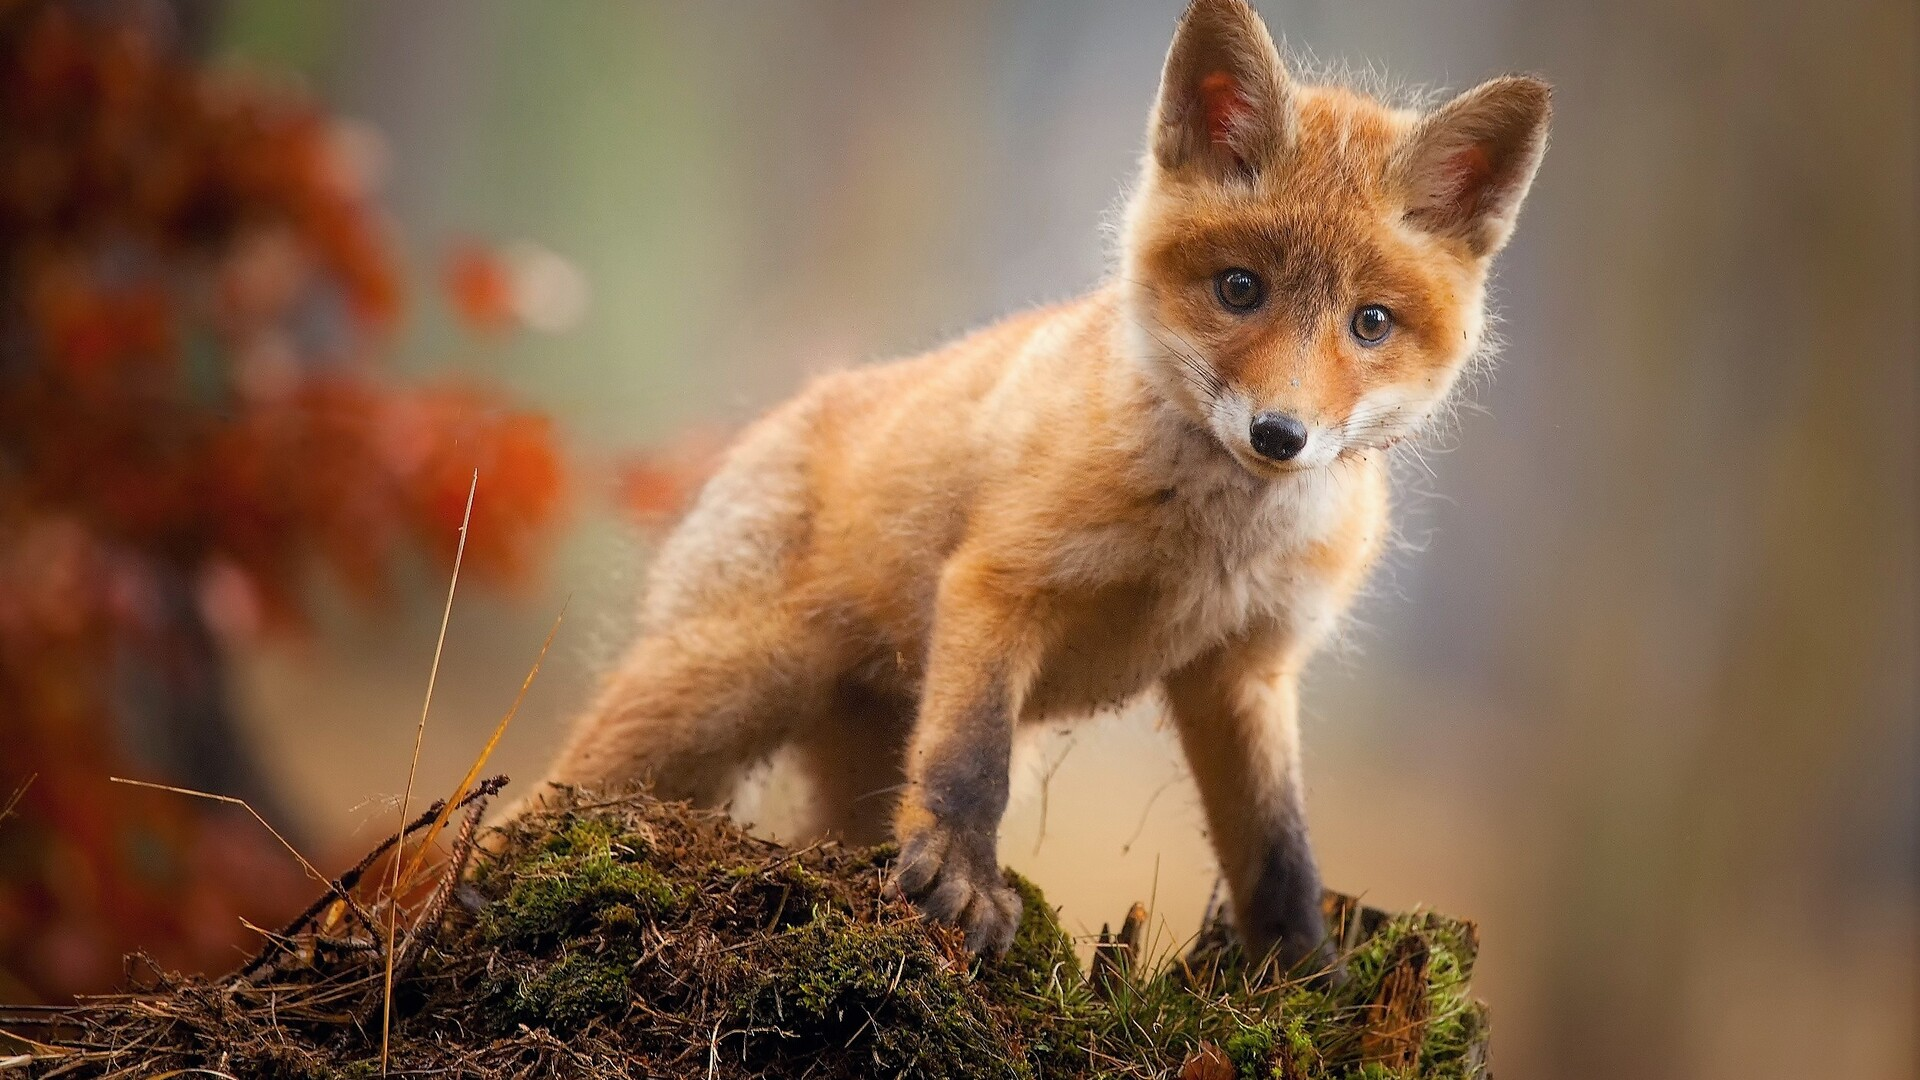 1920x1080 fox cub baby animal cute hd laptop full hd 1080p - Animal 1920x1080 ...